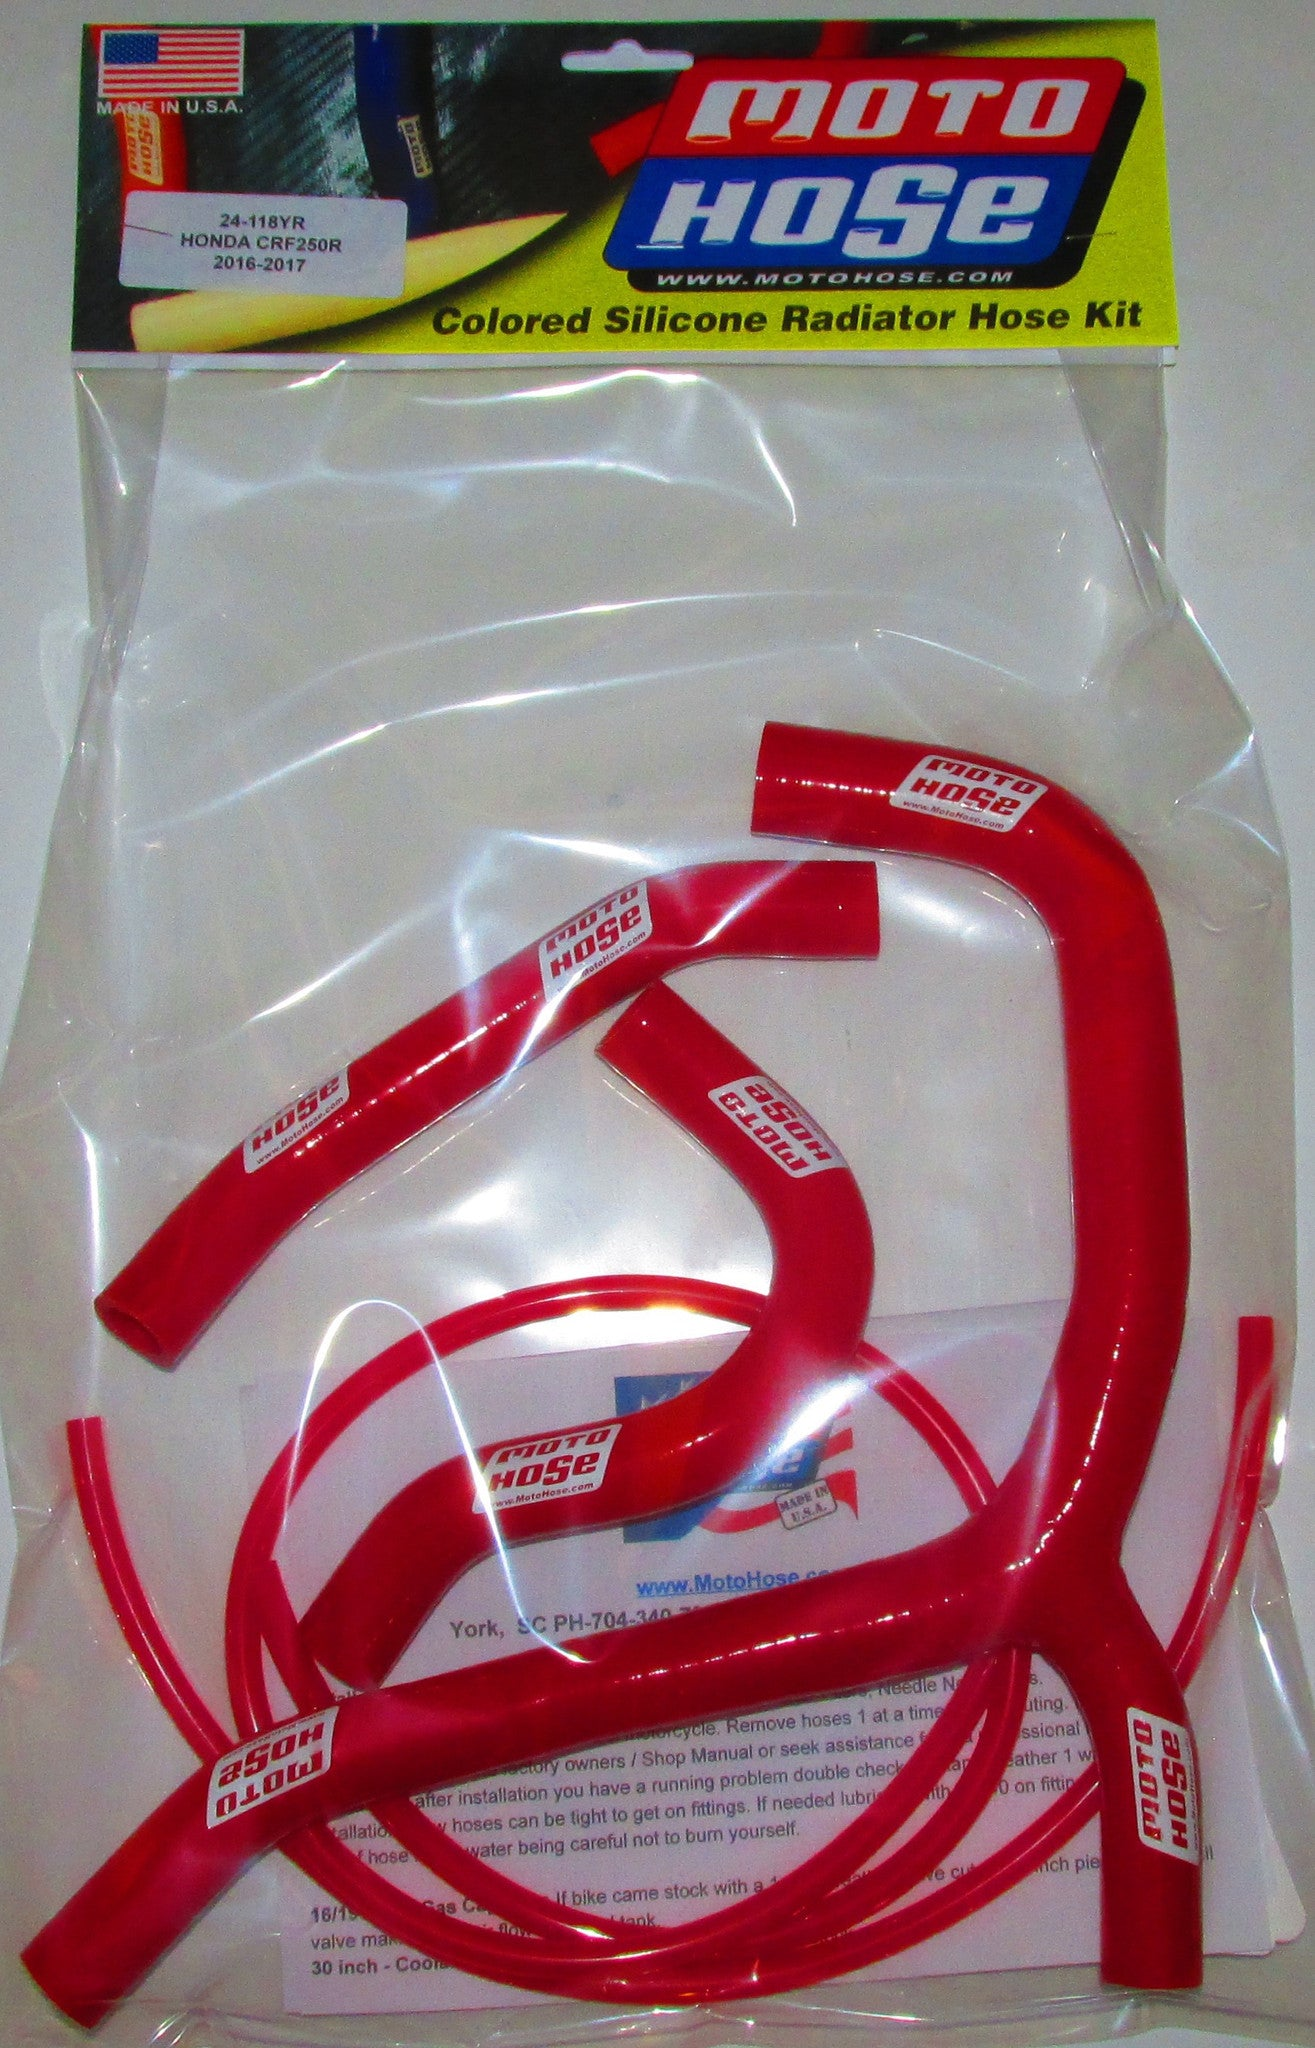 HONDA OFF ROAD PREMIUM HOSE KIT